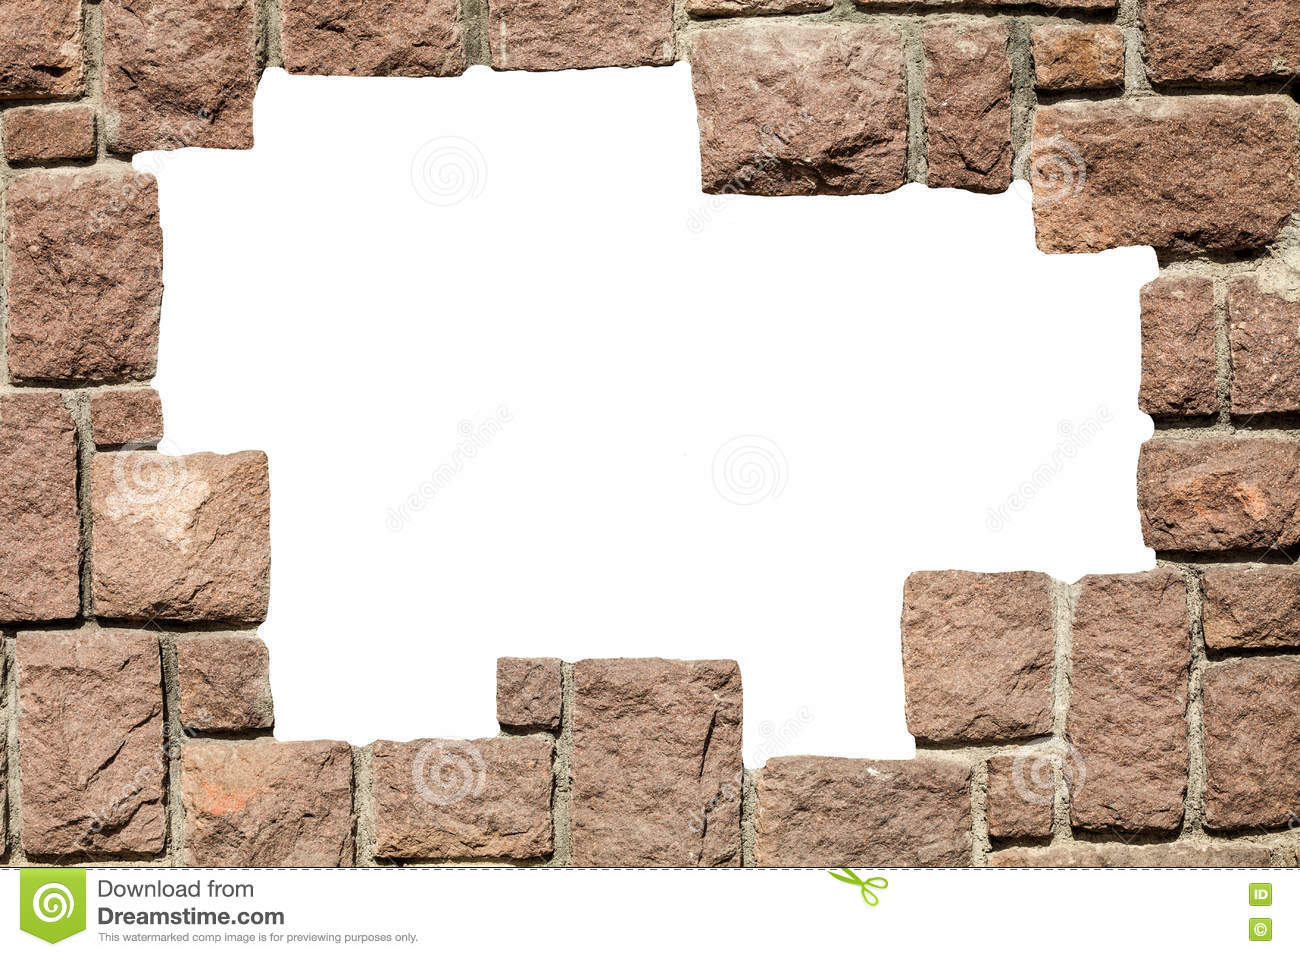 Stone bricks wall frame with empty hole. PNG available